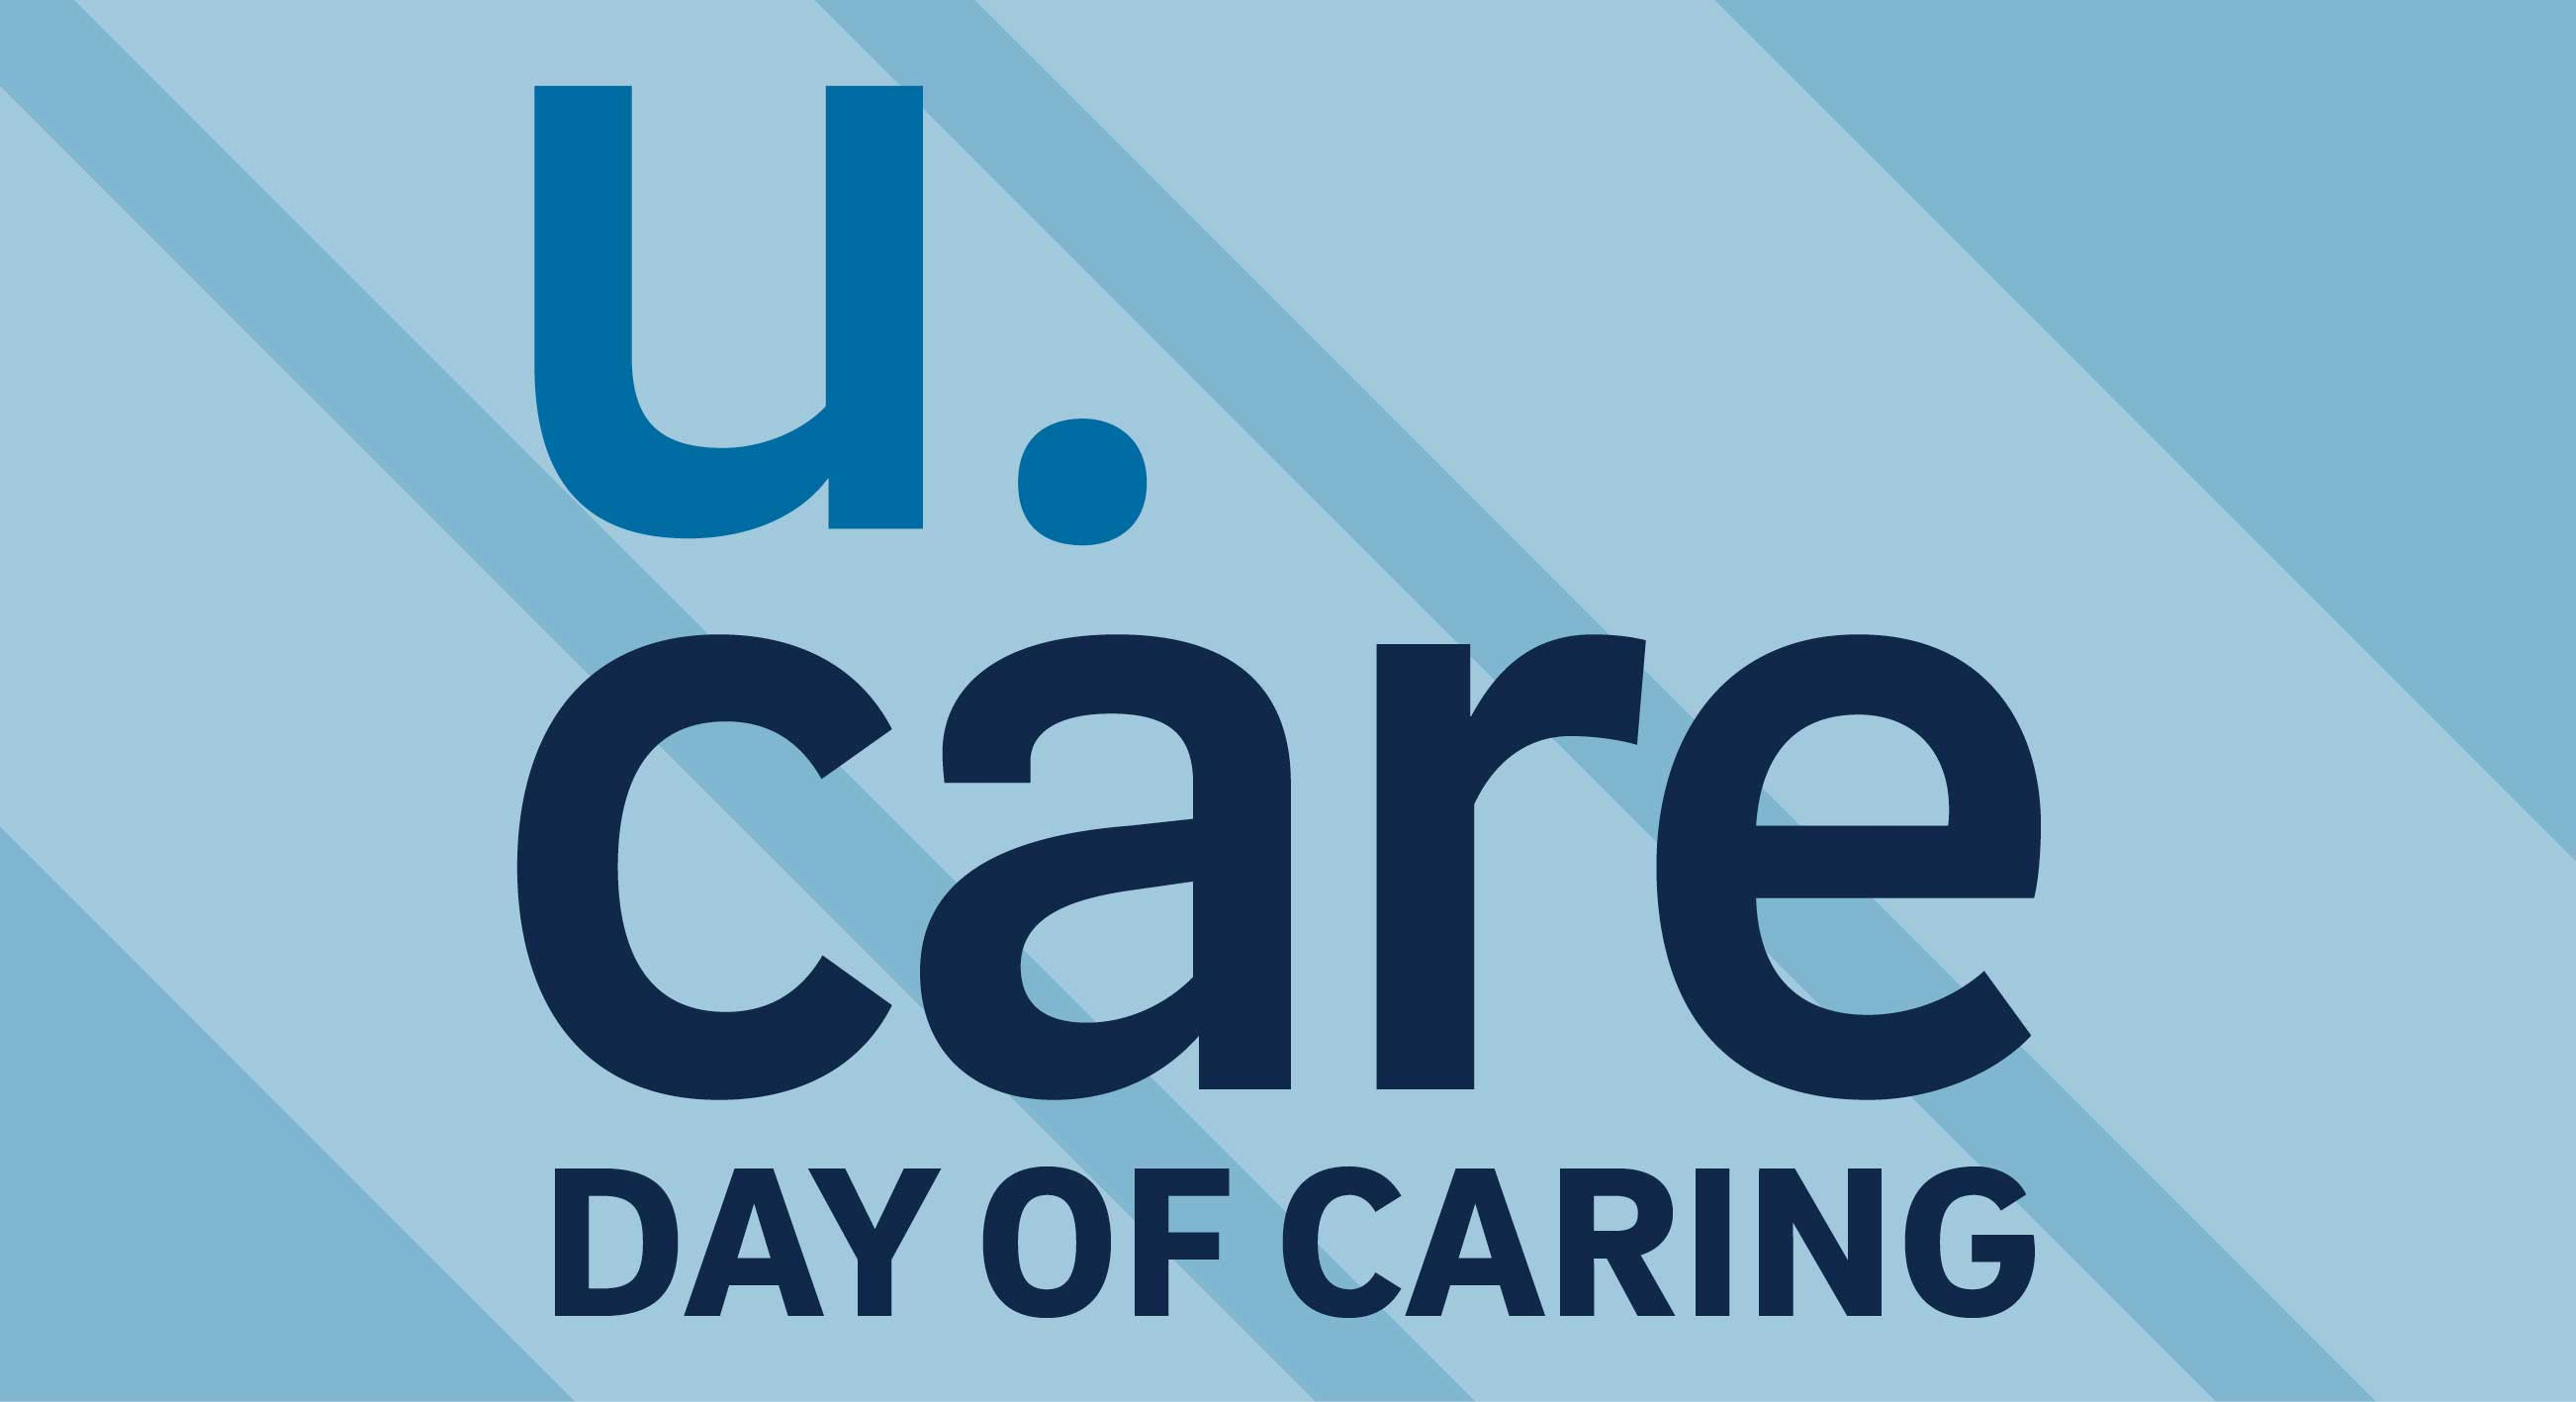 u.care thank you